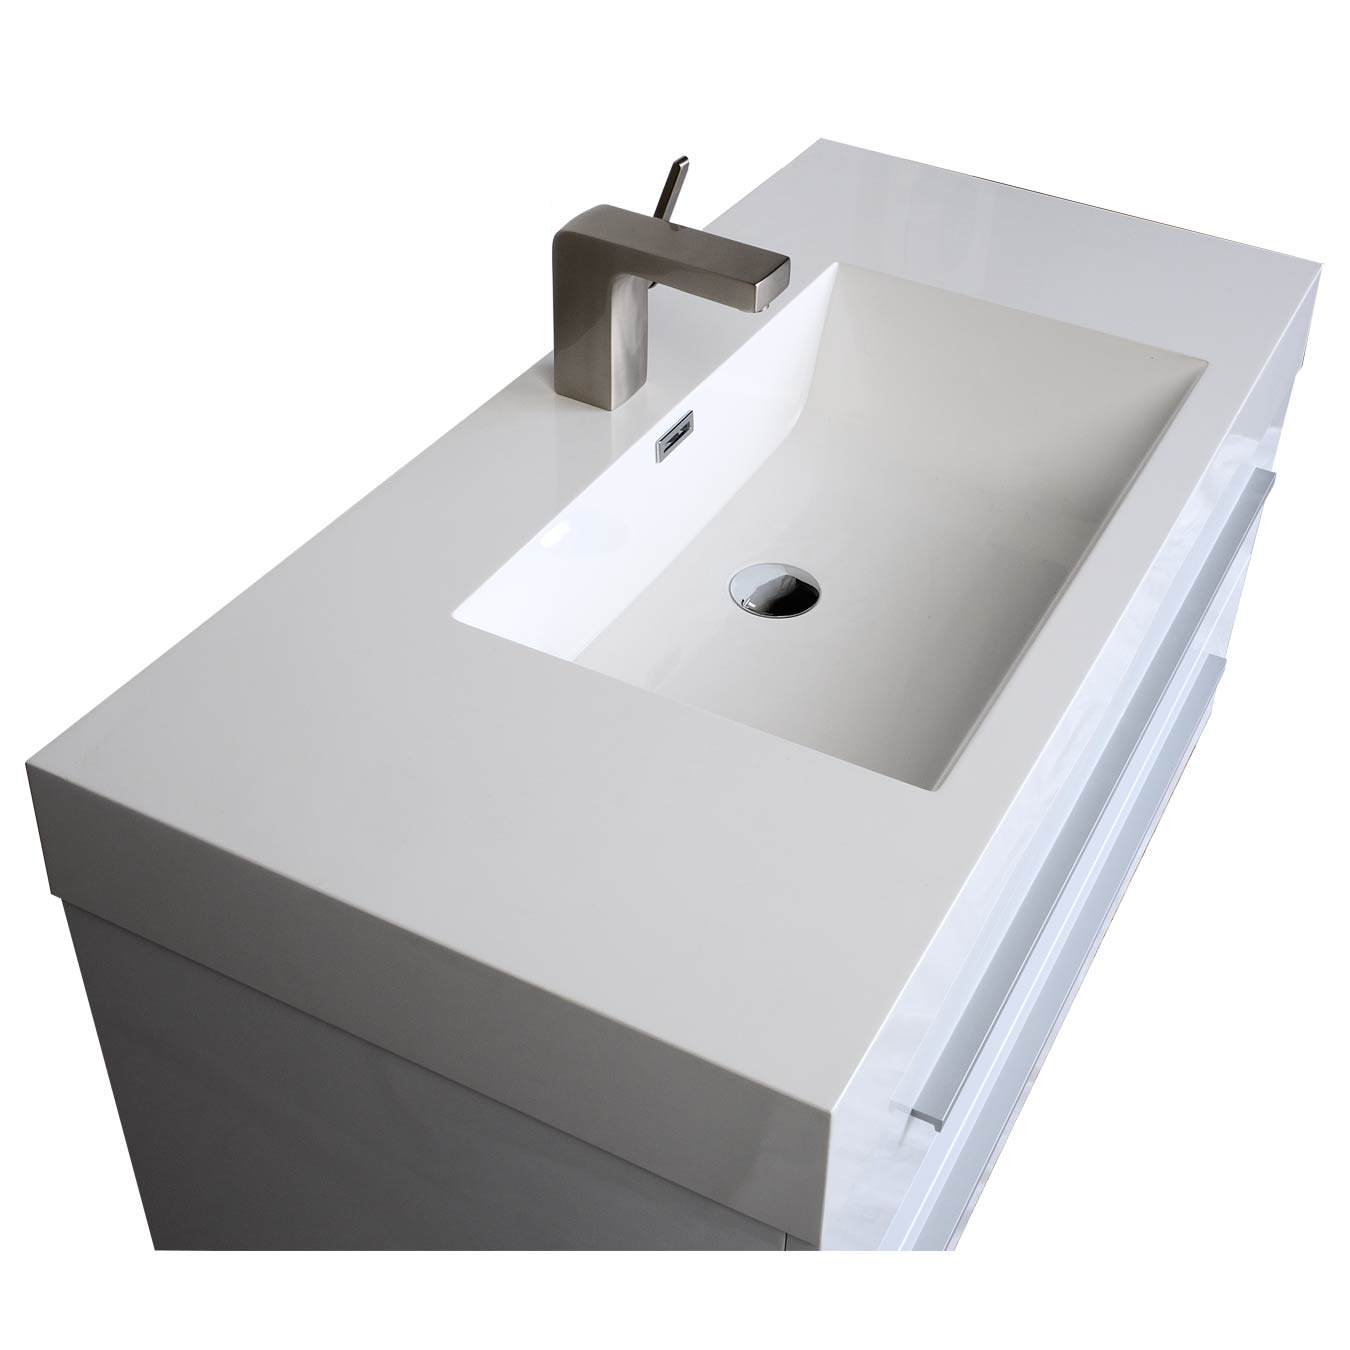 In WallMount Modern Bathroom Vanity In High Gloss White TN - Wall mount vanities for bathrooms